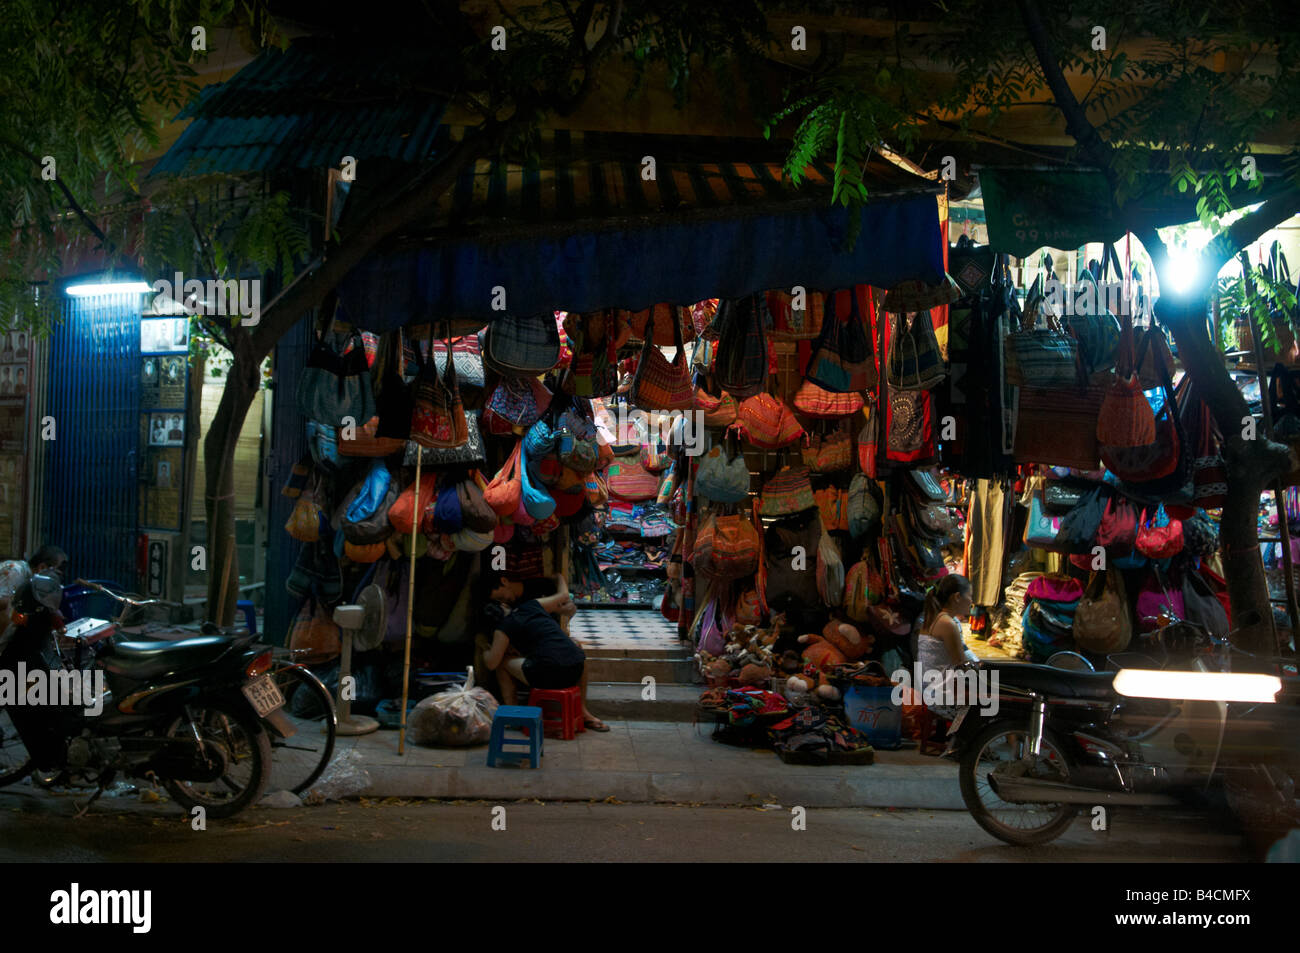 A Handbag shop at a Hanoi nightmarket, Vietnam - Stock Image